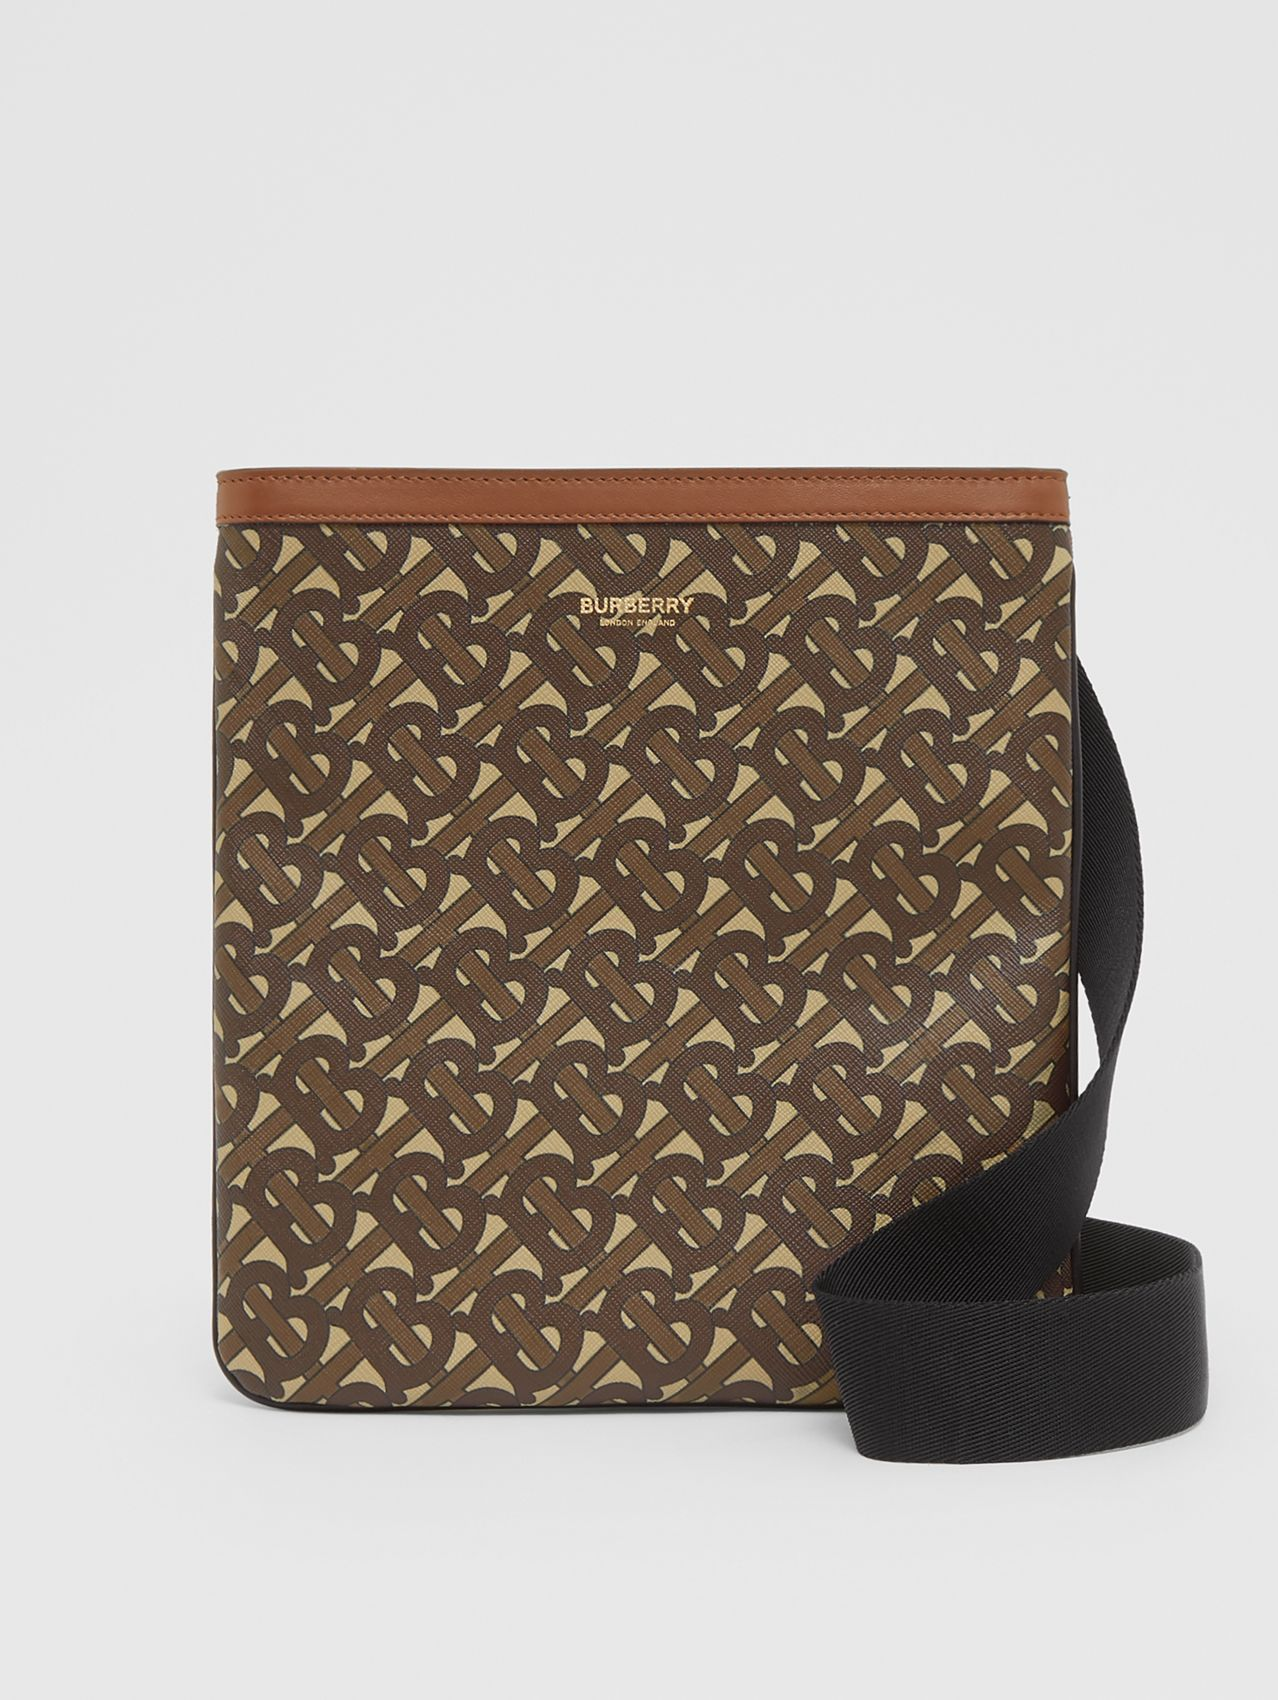 Monogram Print E-canvas Crossbody Bag in Bridle Brown